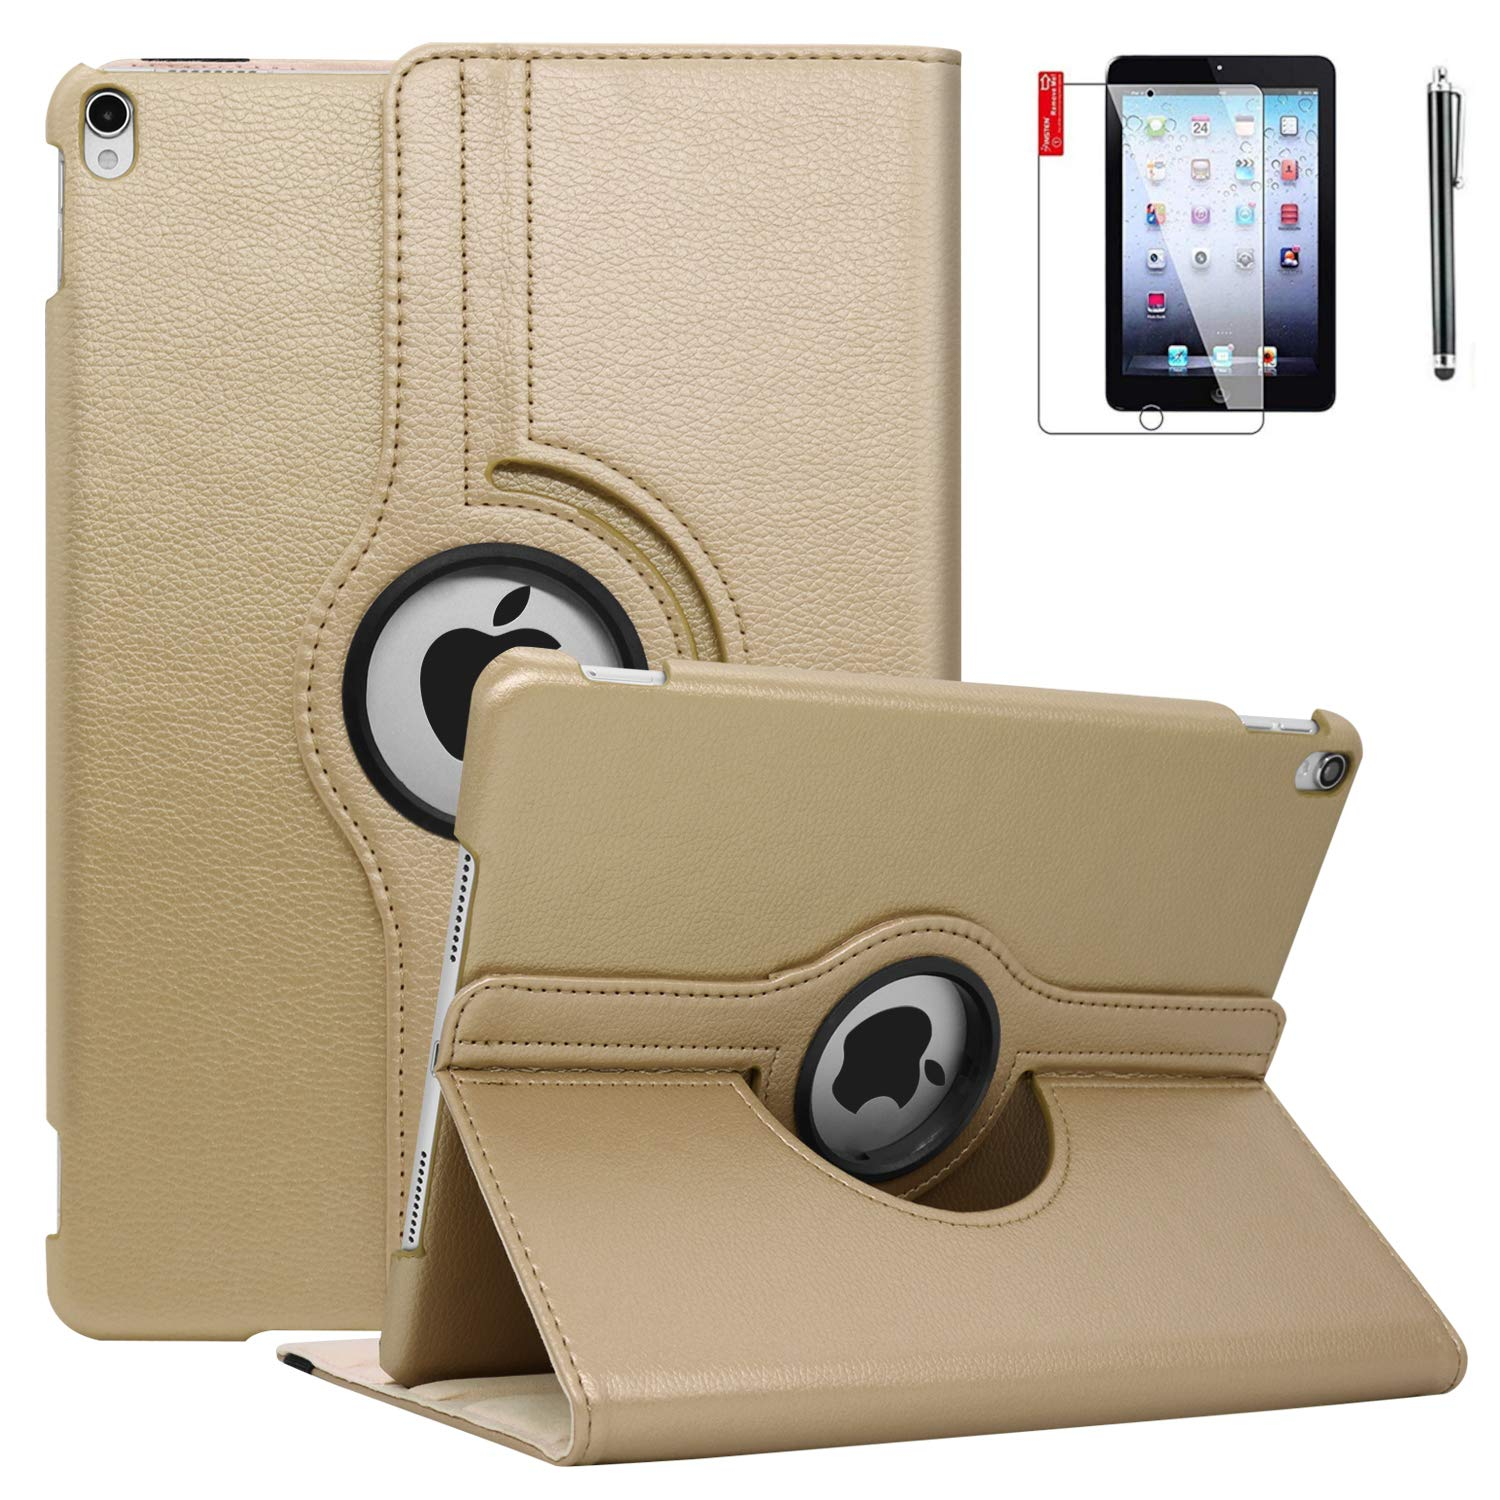 NEWQIANG iPad 6th Generation Cases with Bonus Screen Protector and Stylus - iPad 9.7 inch Air1 2018 2017 Case Cover - 360 Degree Rotating Stand, Auto Sleep Wake - A1822 A1823 (Golden)